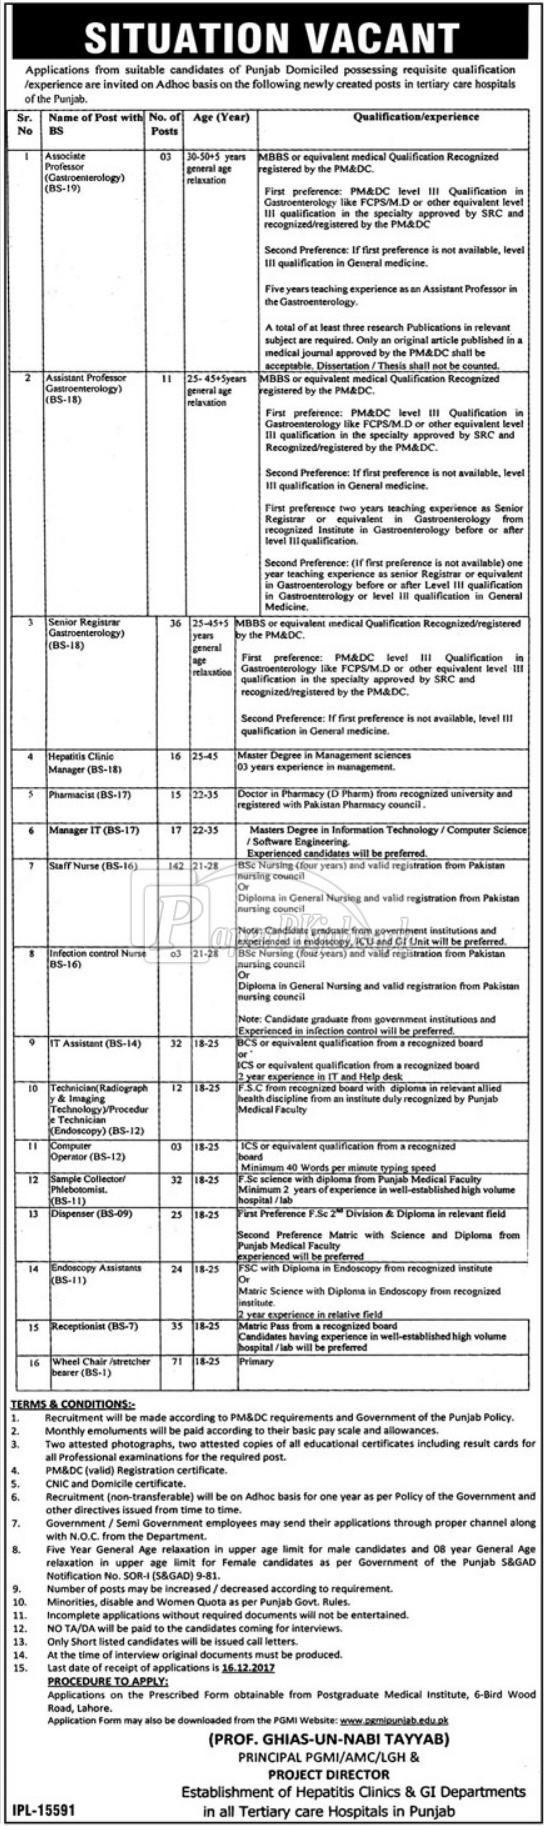 PGMI AMC LGH & Tertiary Care Hospitals Punjab Jobs 2017